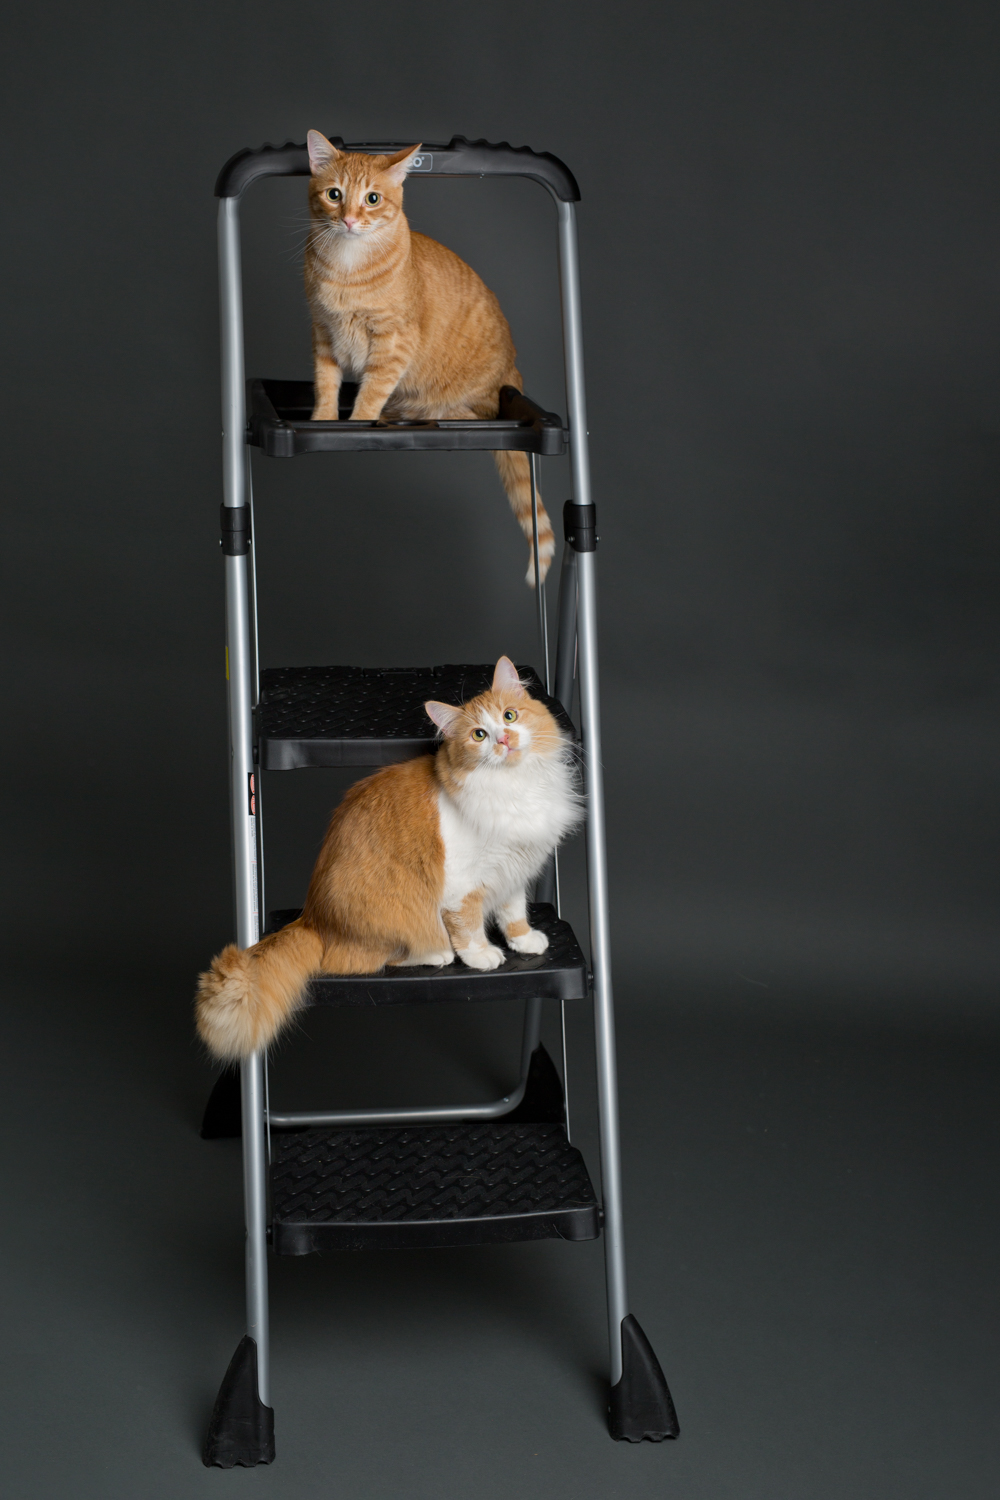 playful-cat-siblings-on-ladder.jpg